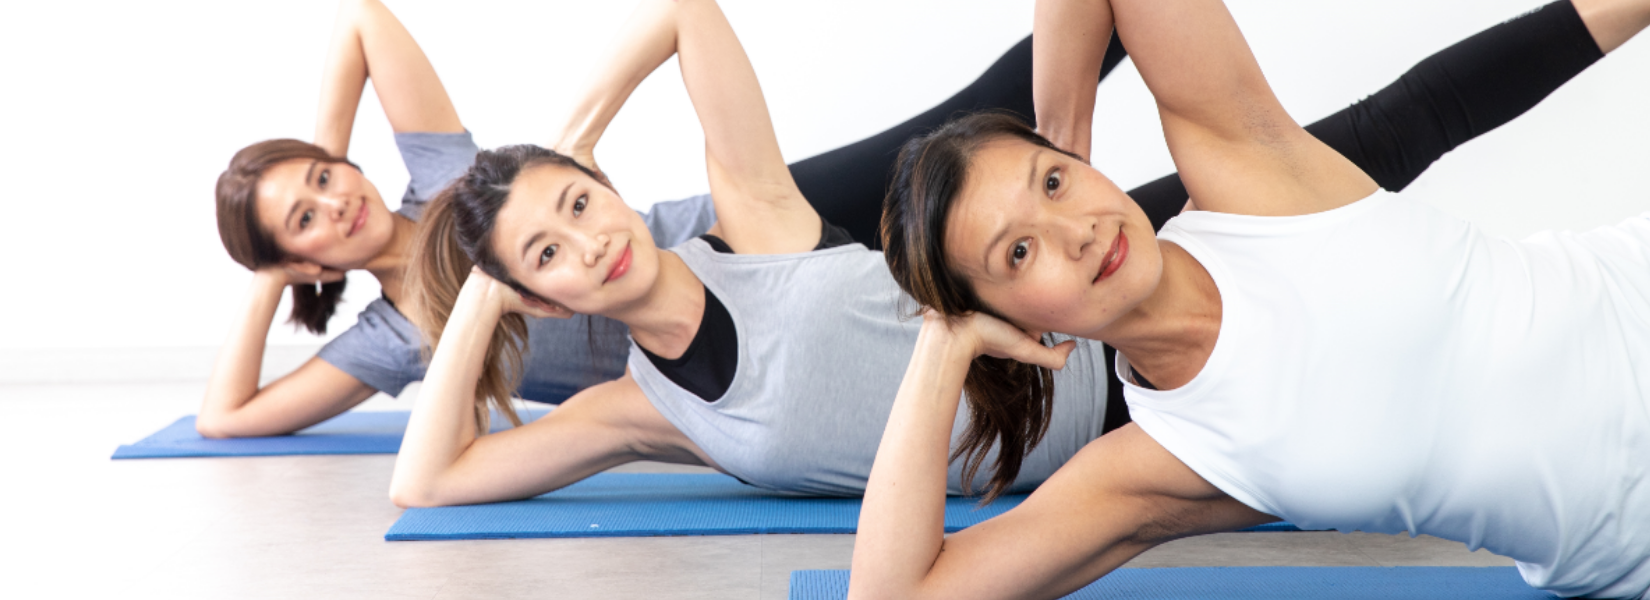 Pilates Singapore – Things to Know For Your Pilates Class